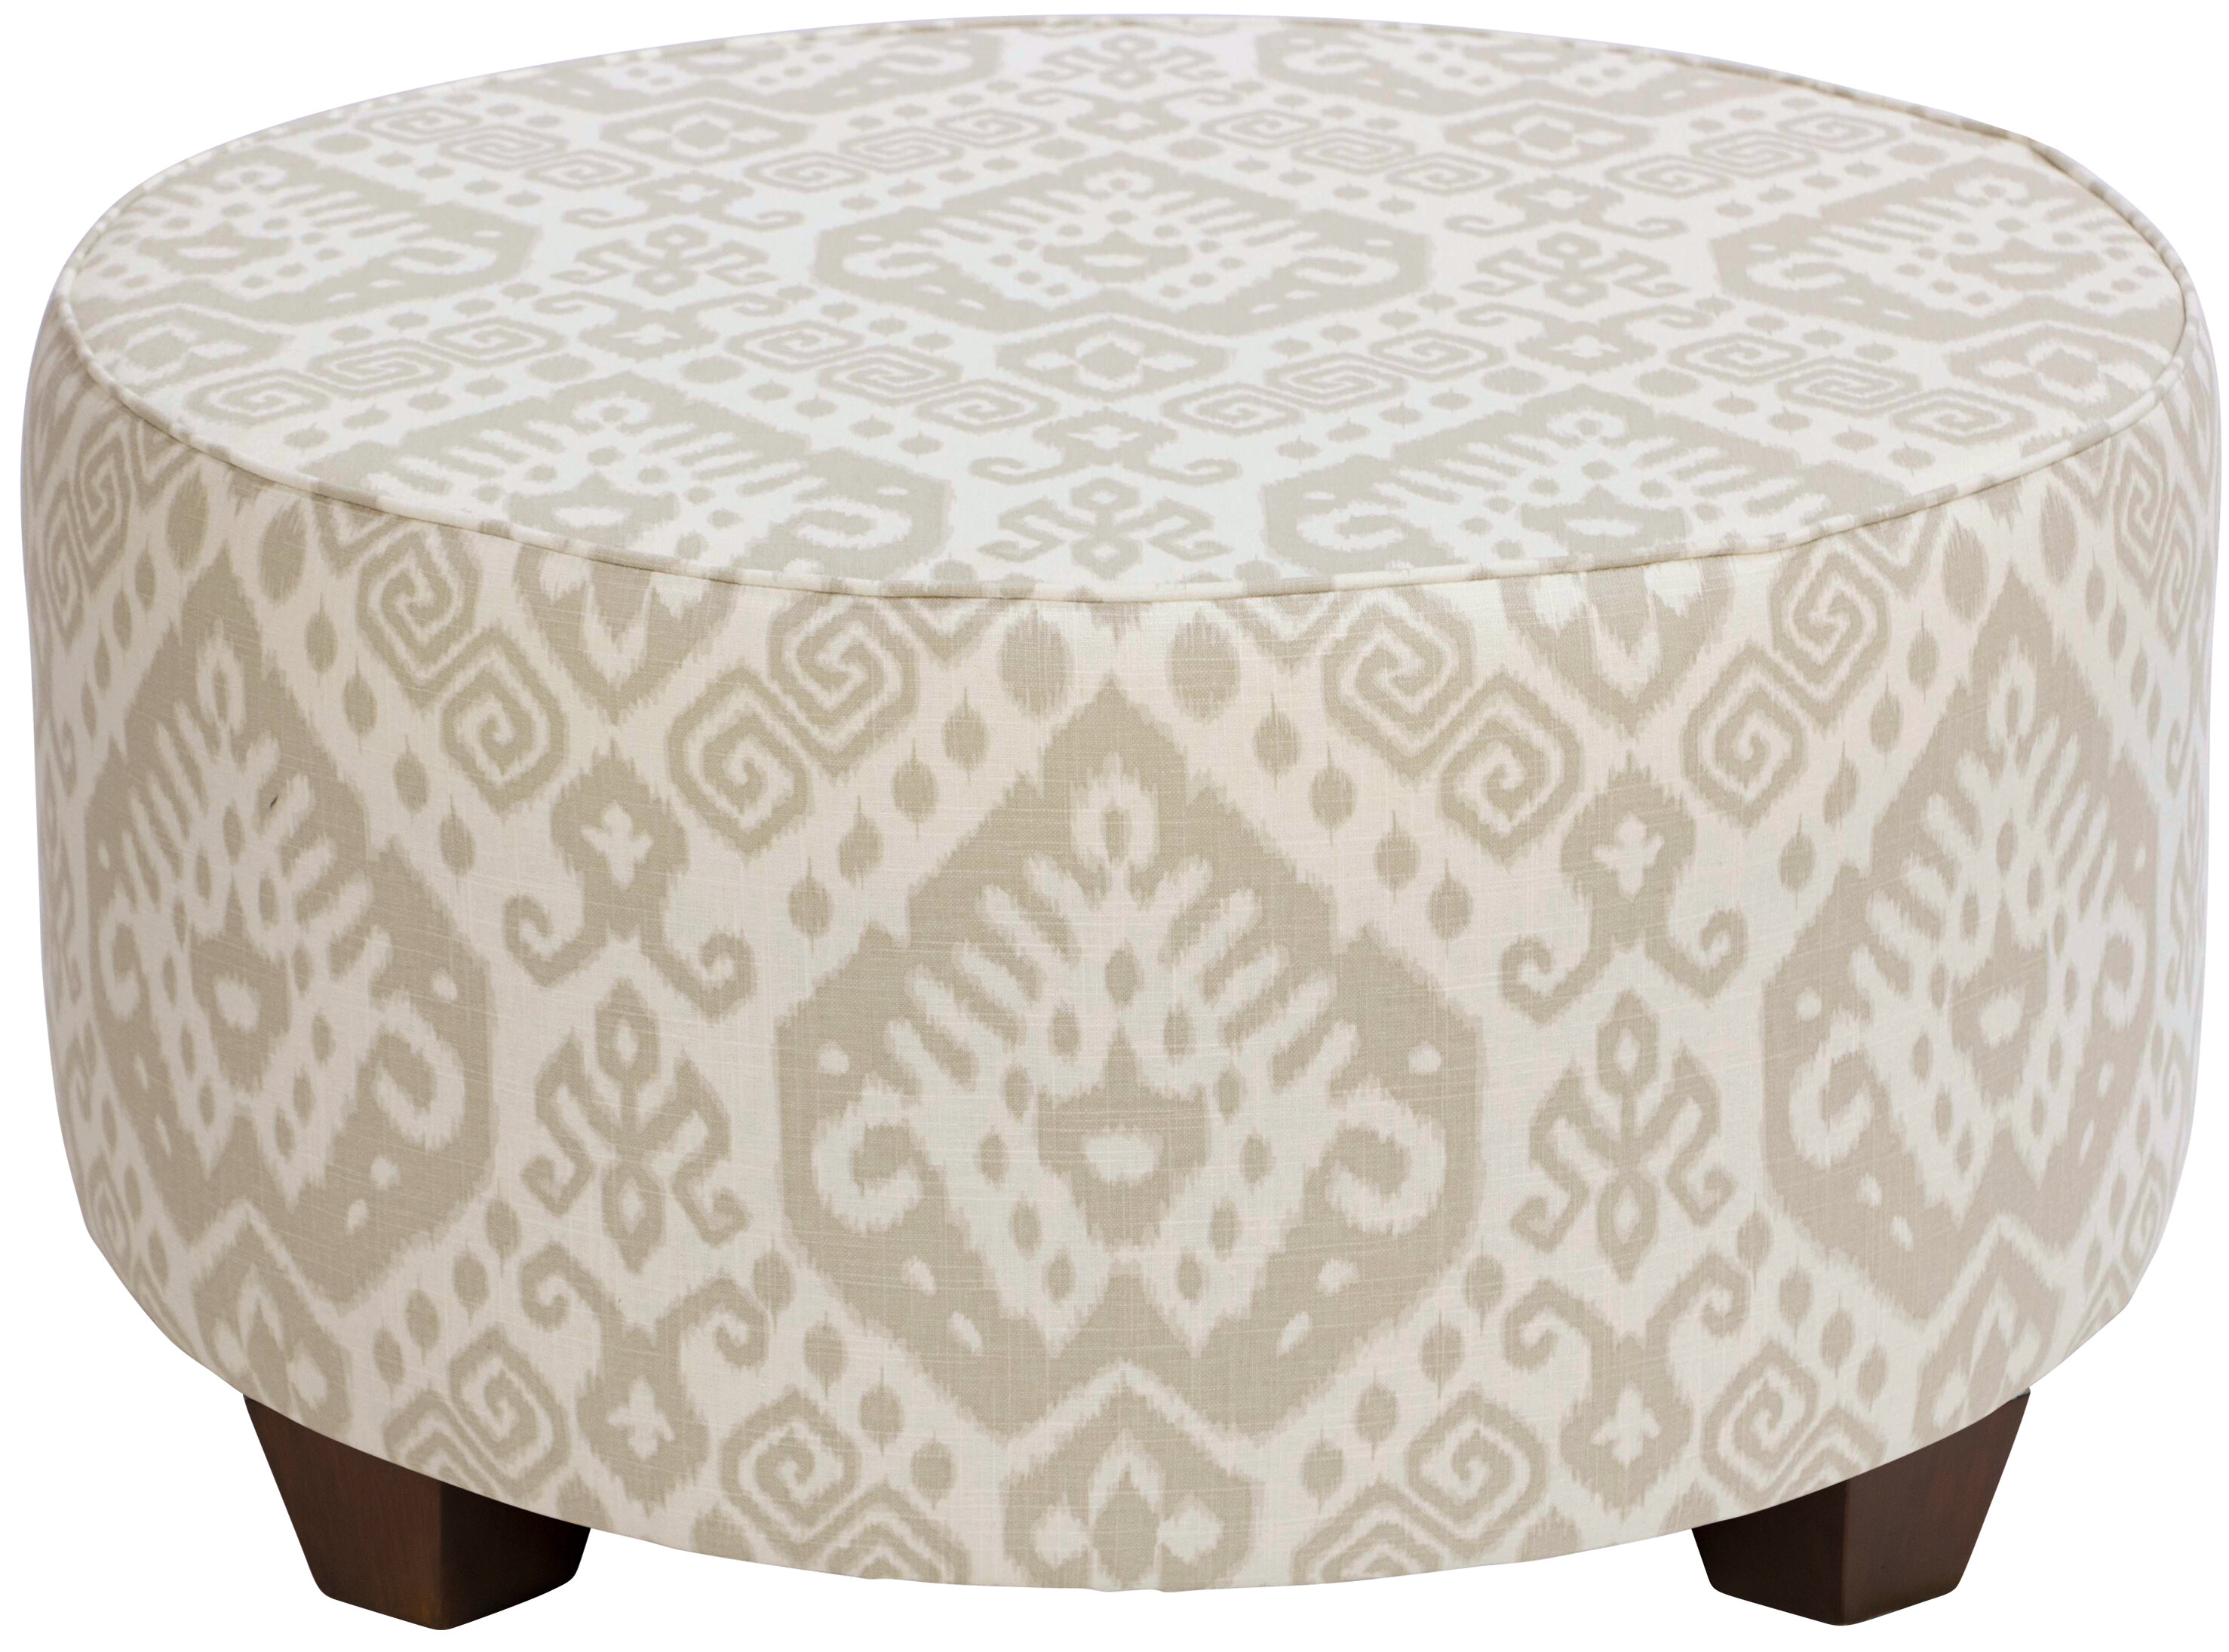 com multiple storage ip floral mainstays walmart ottoman collapsible colors